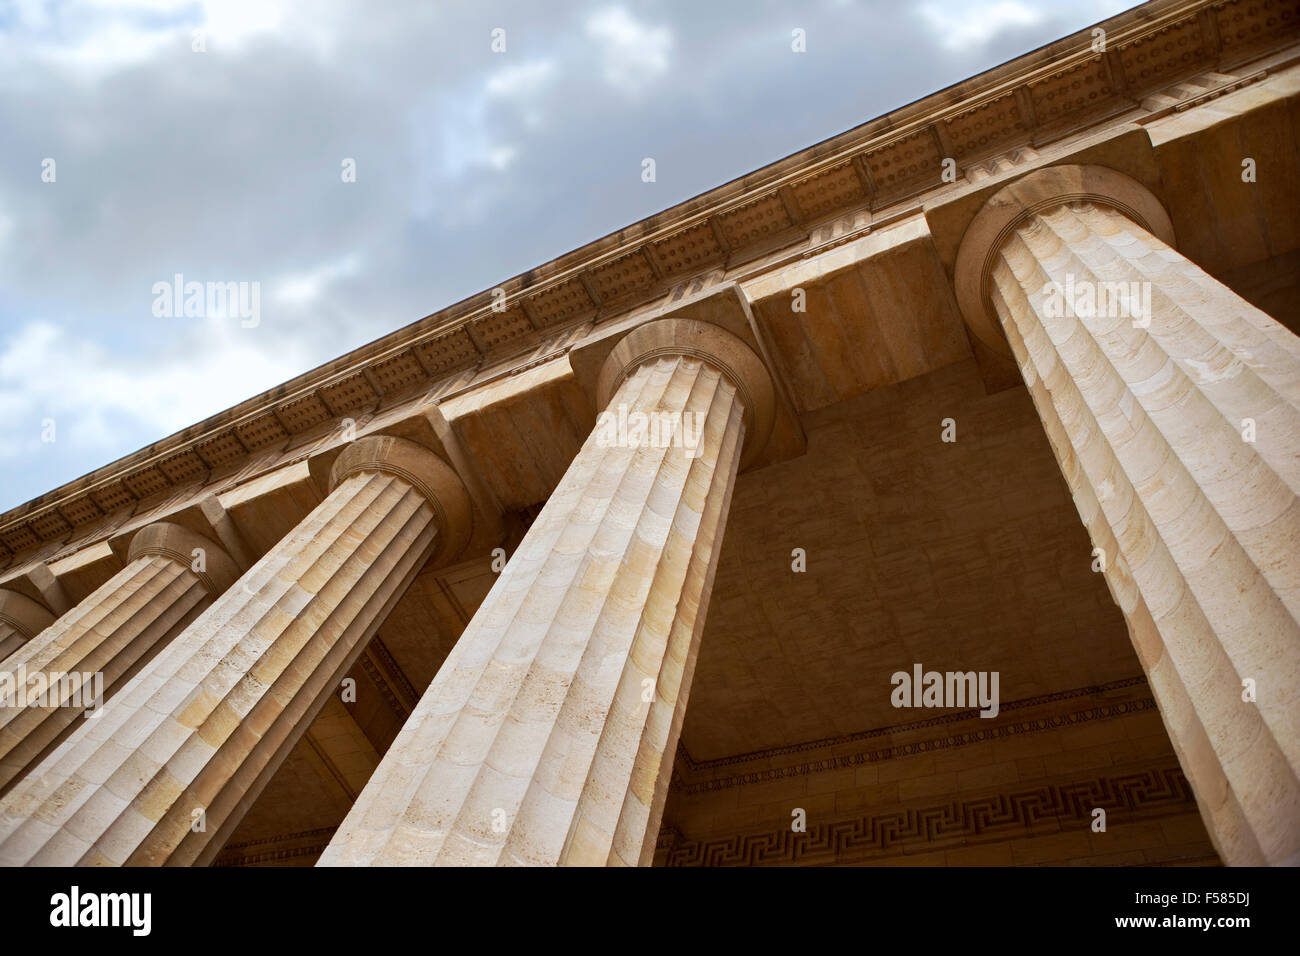 Stone columns of a Greek-Roman building in Bordeaux, France - Stock Image